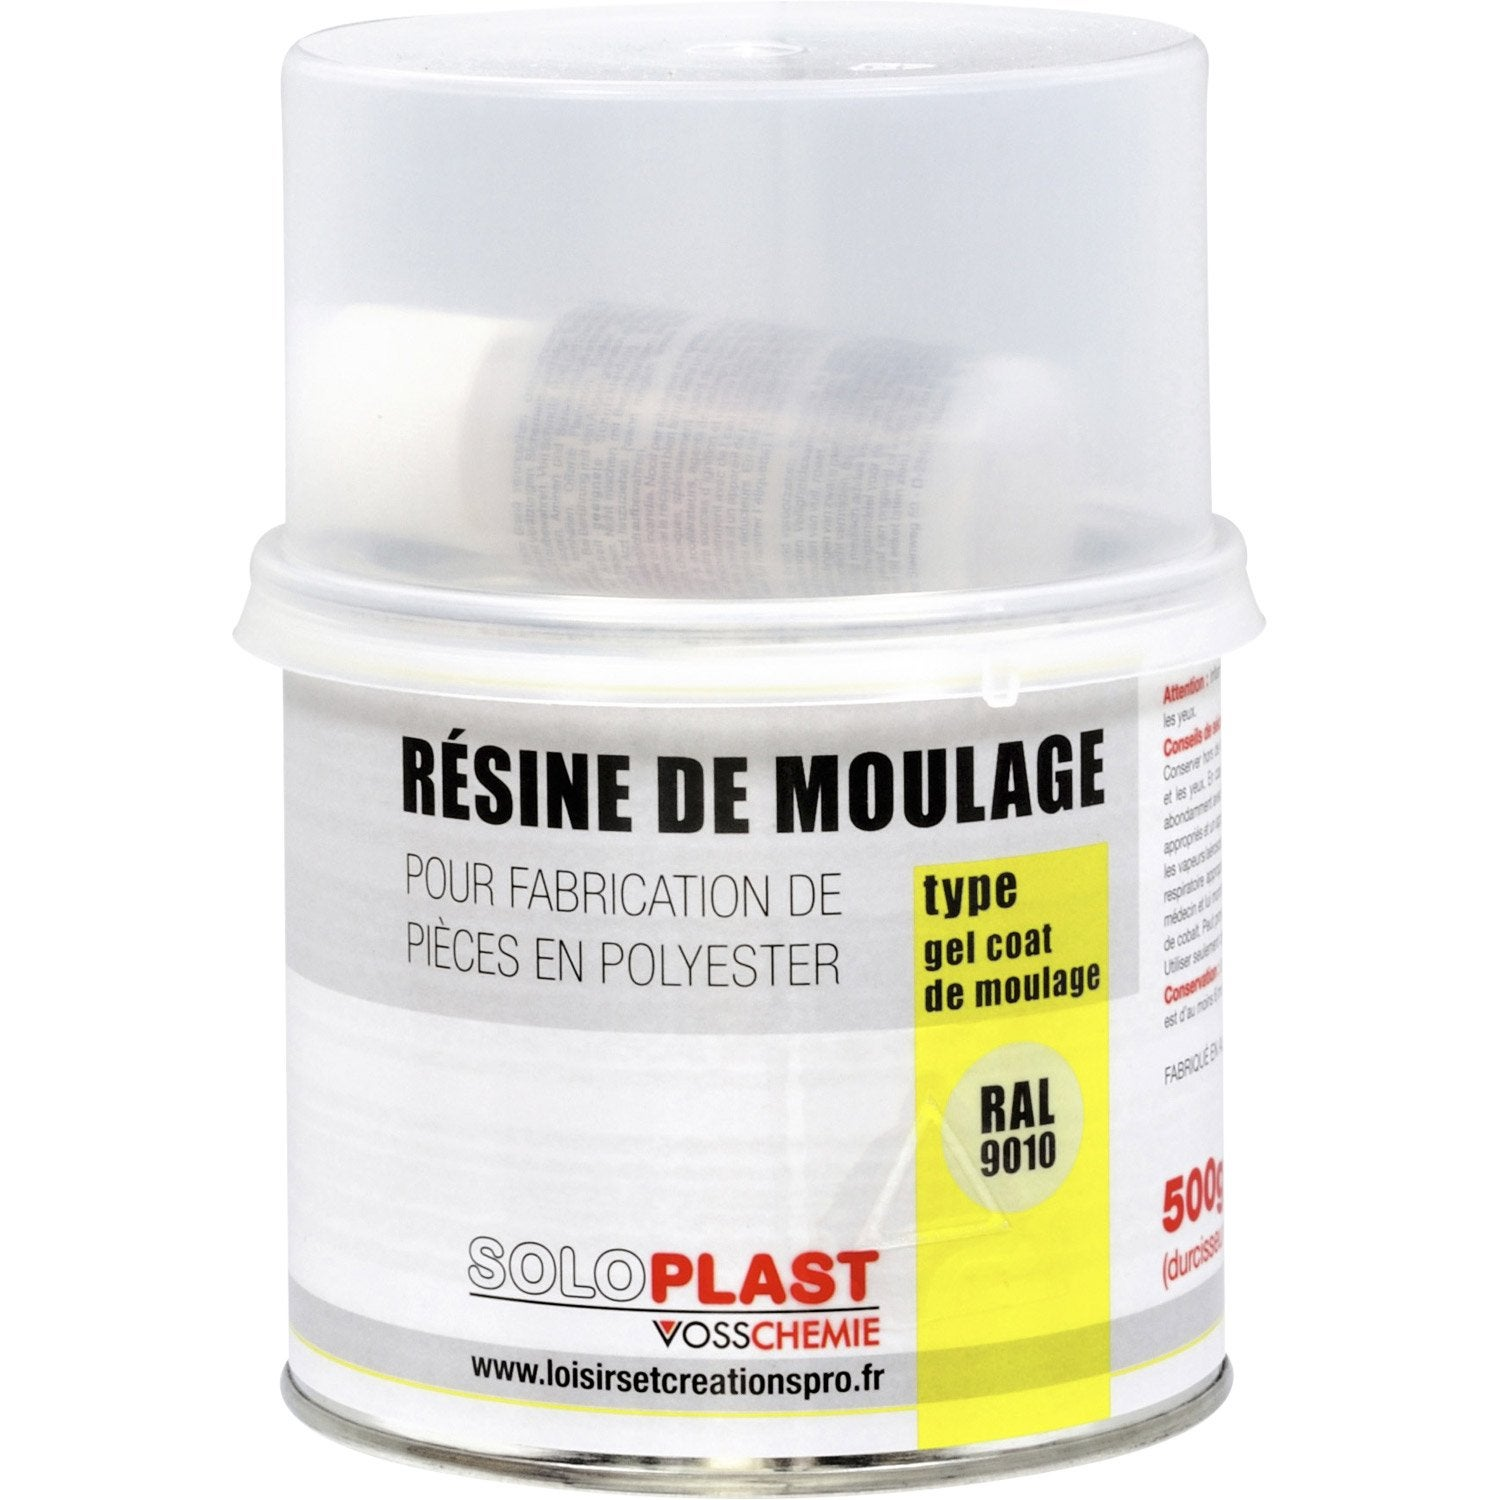 R sine gel coat soloplast 500g leroy merlin for Resine polyester leroy merlin